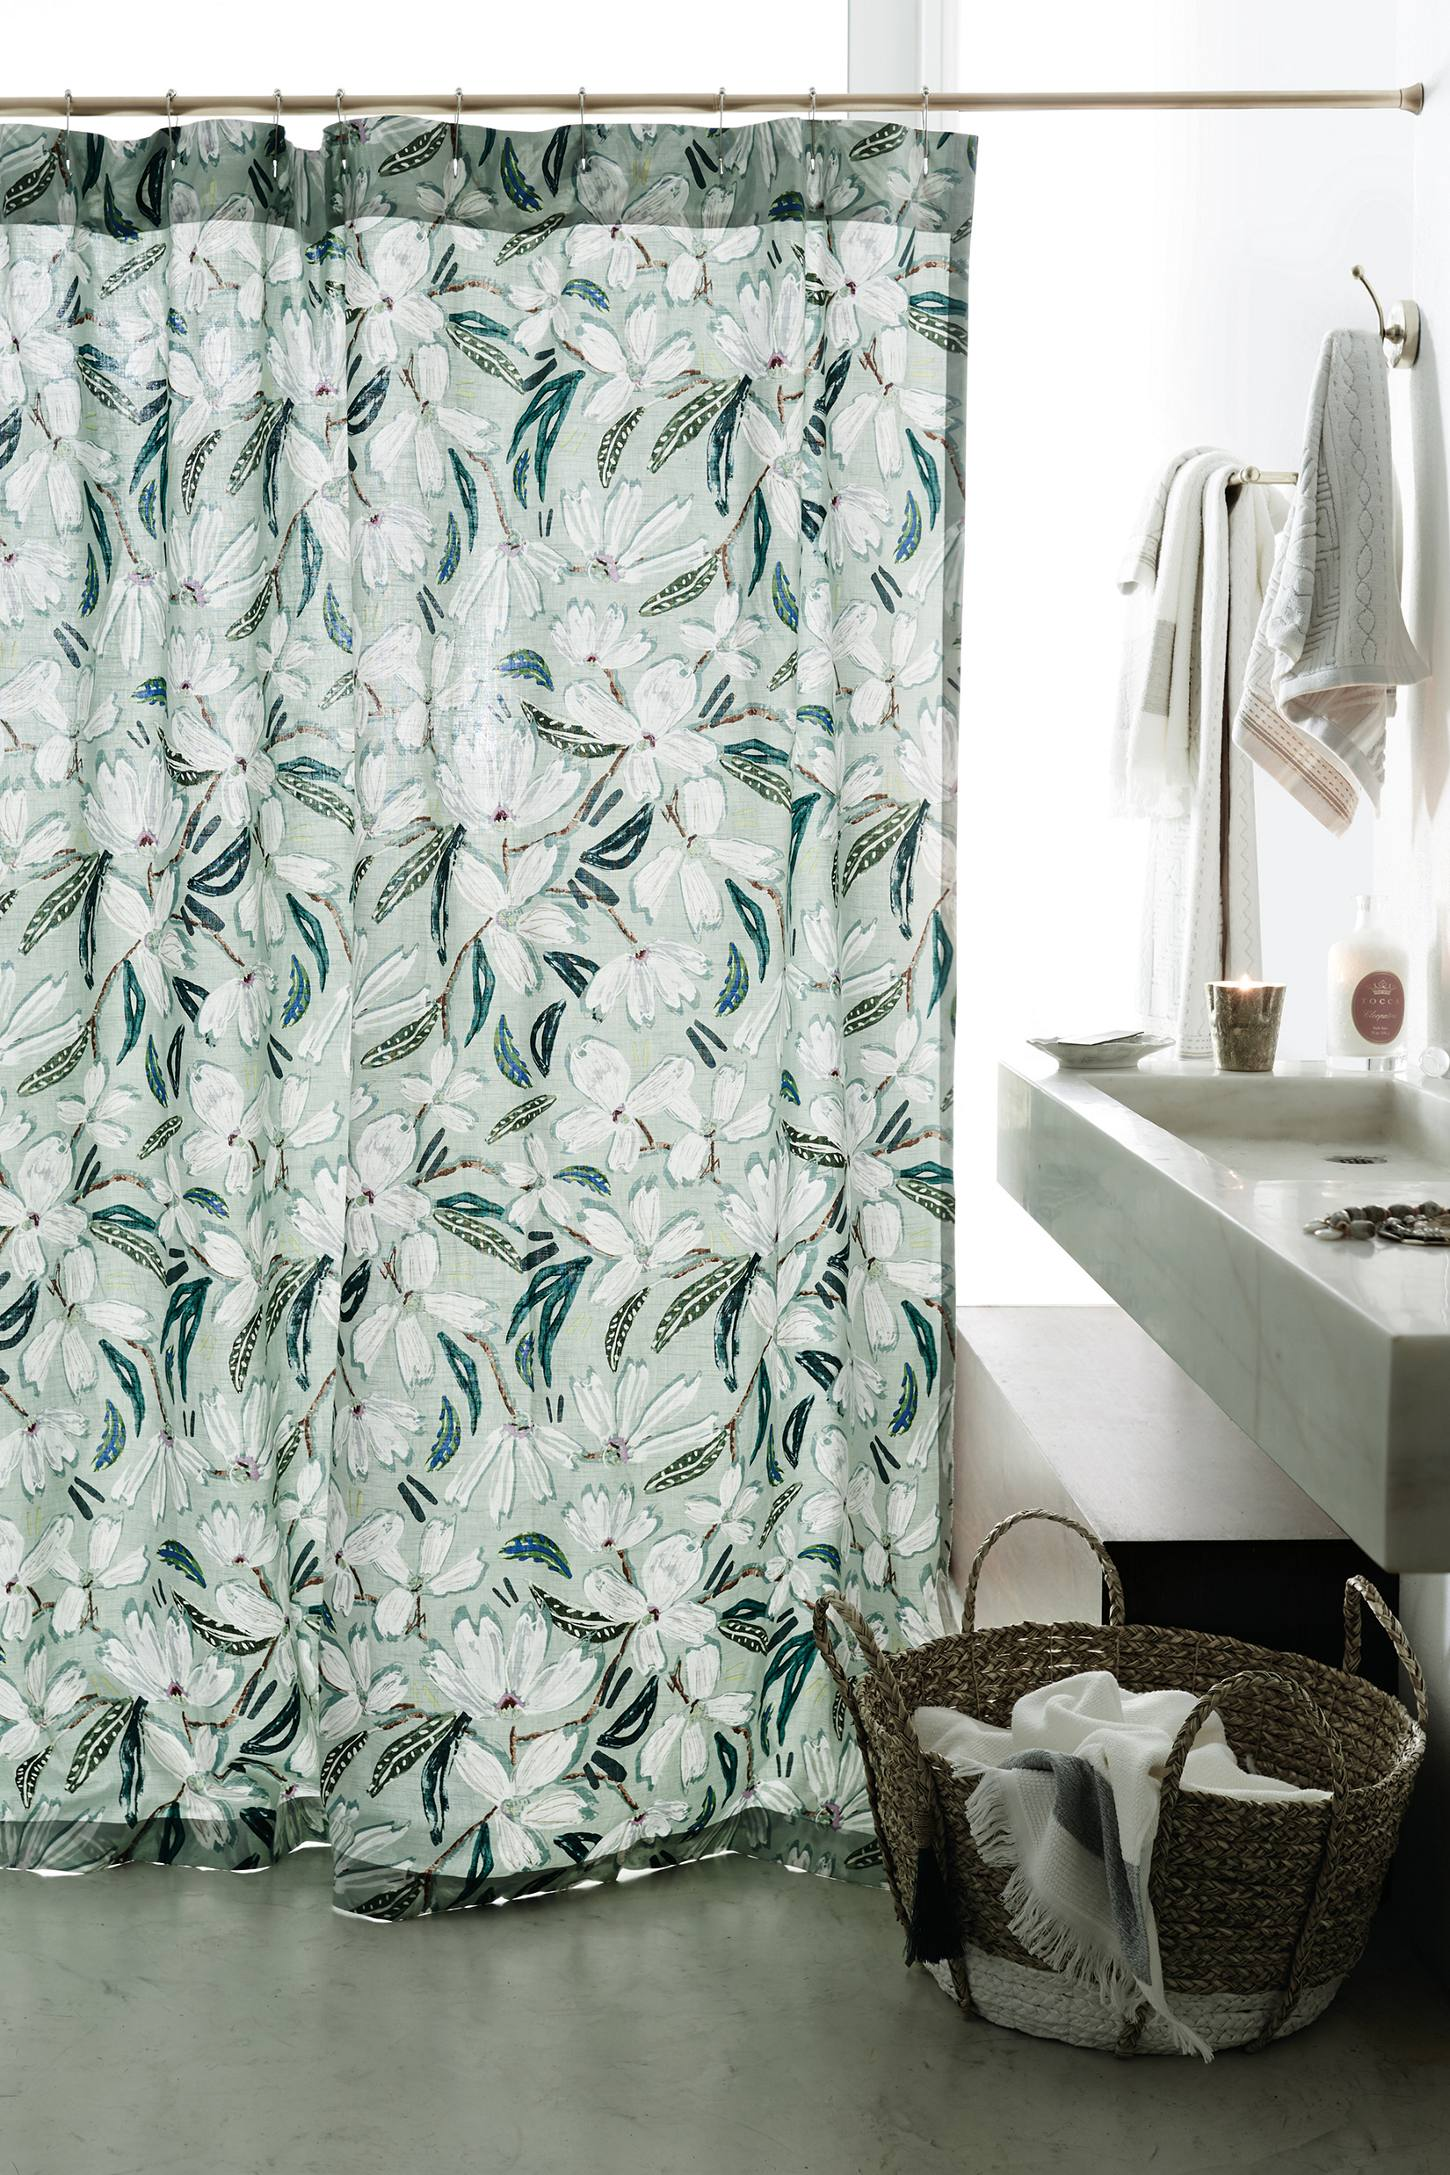 Floral Shower Curtain | Funky Shower Curtains | Floral Print Shower Curtain